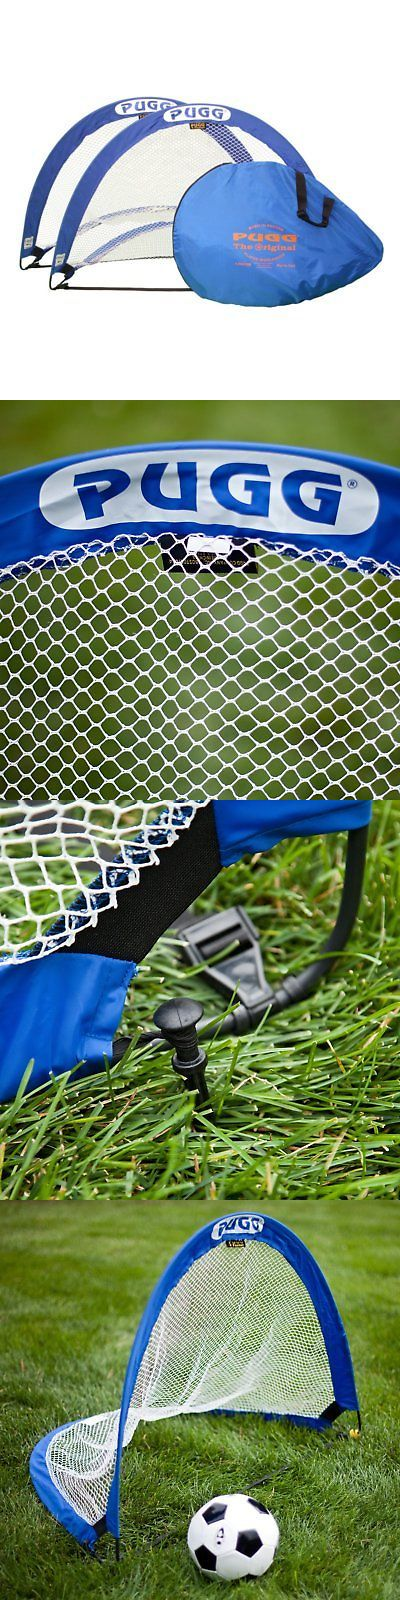 Goals and Nets 159180: 4 Ft. Pugg Soccer Goals -> BUY IT NOW ONLY: $61.5 on eBay!